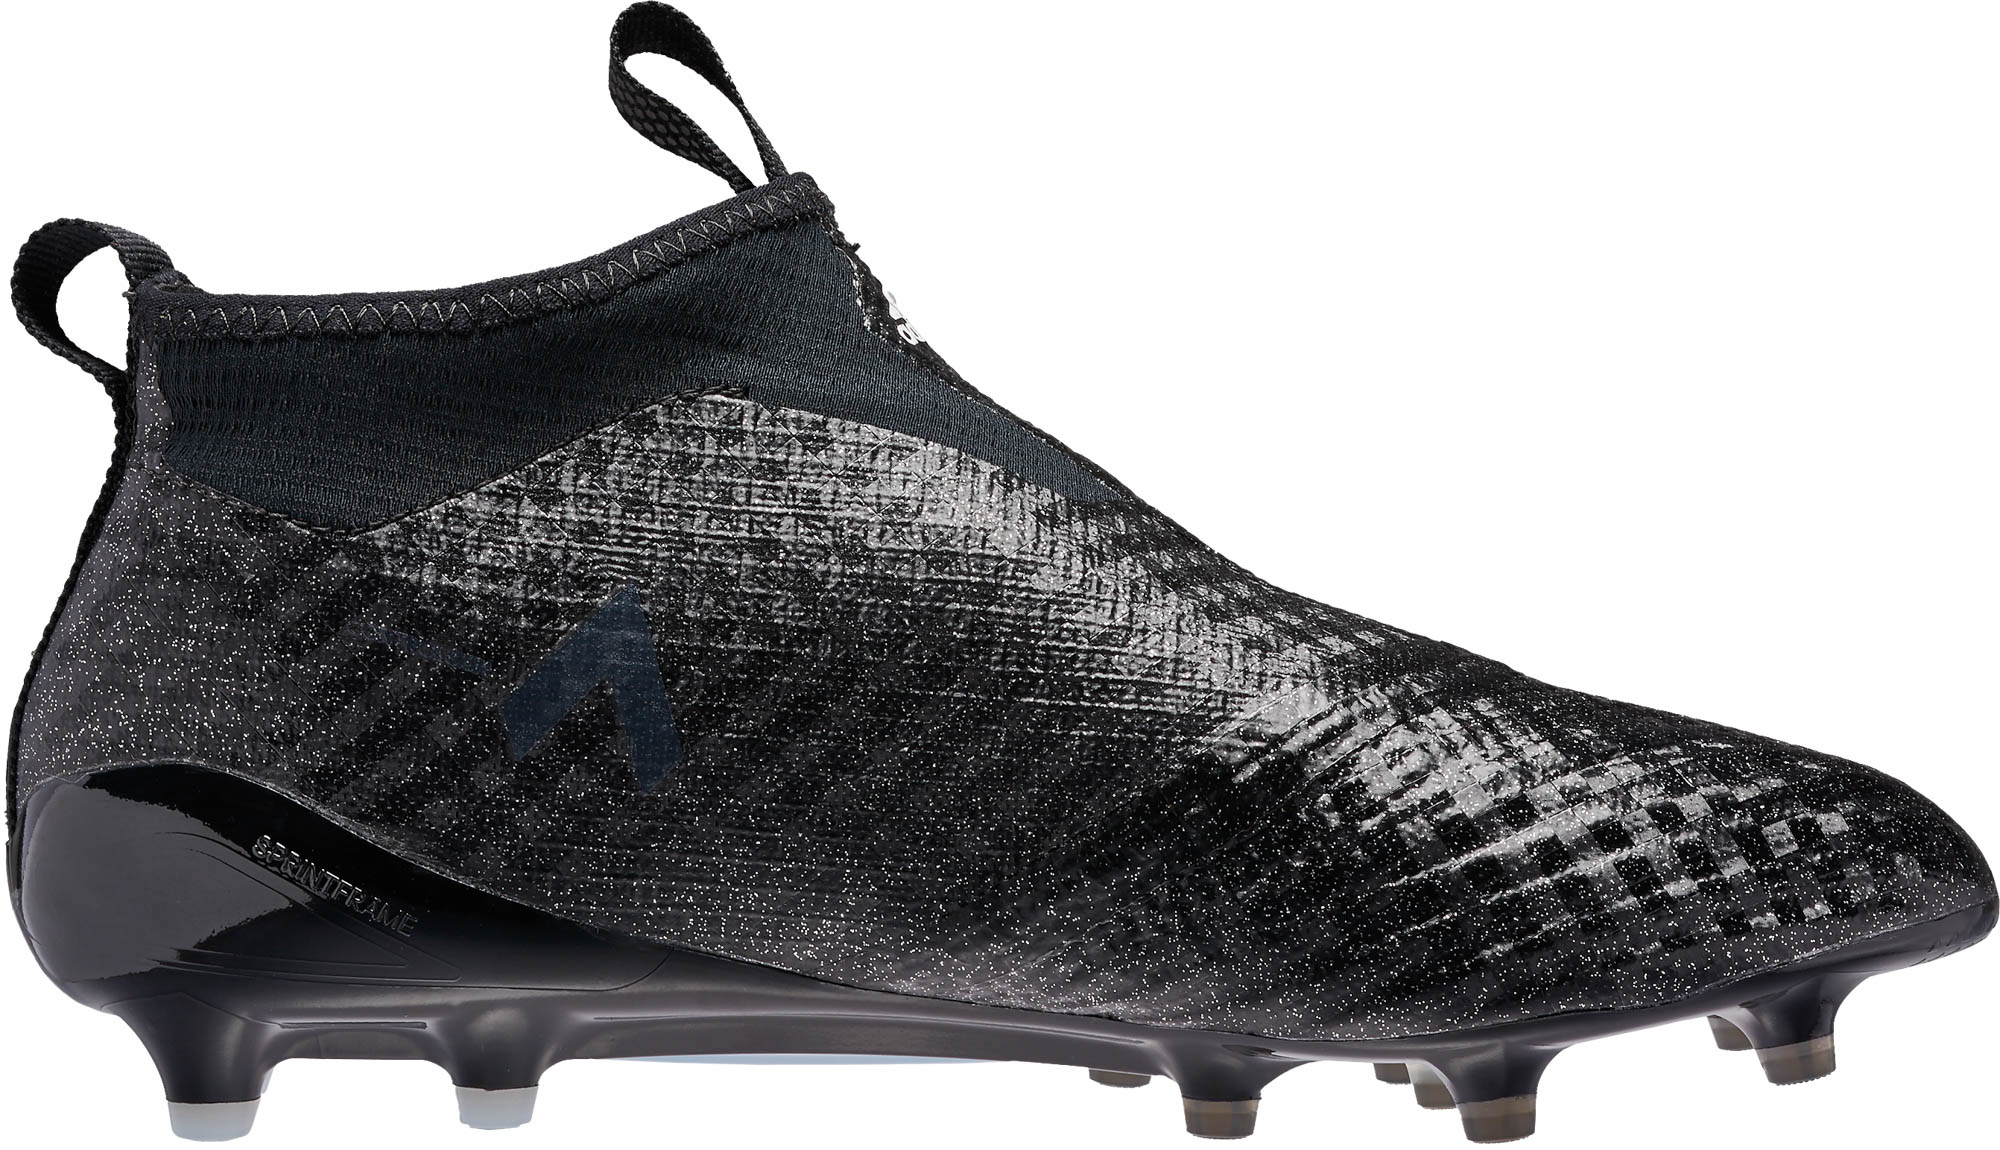 adidas ACE 17 Purecontrol - Black ACE FG Soccer Cleats